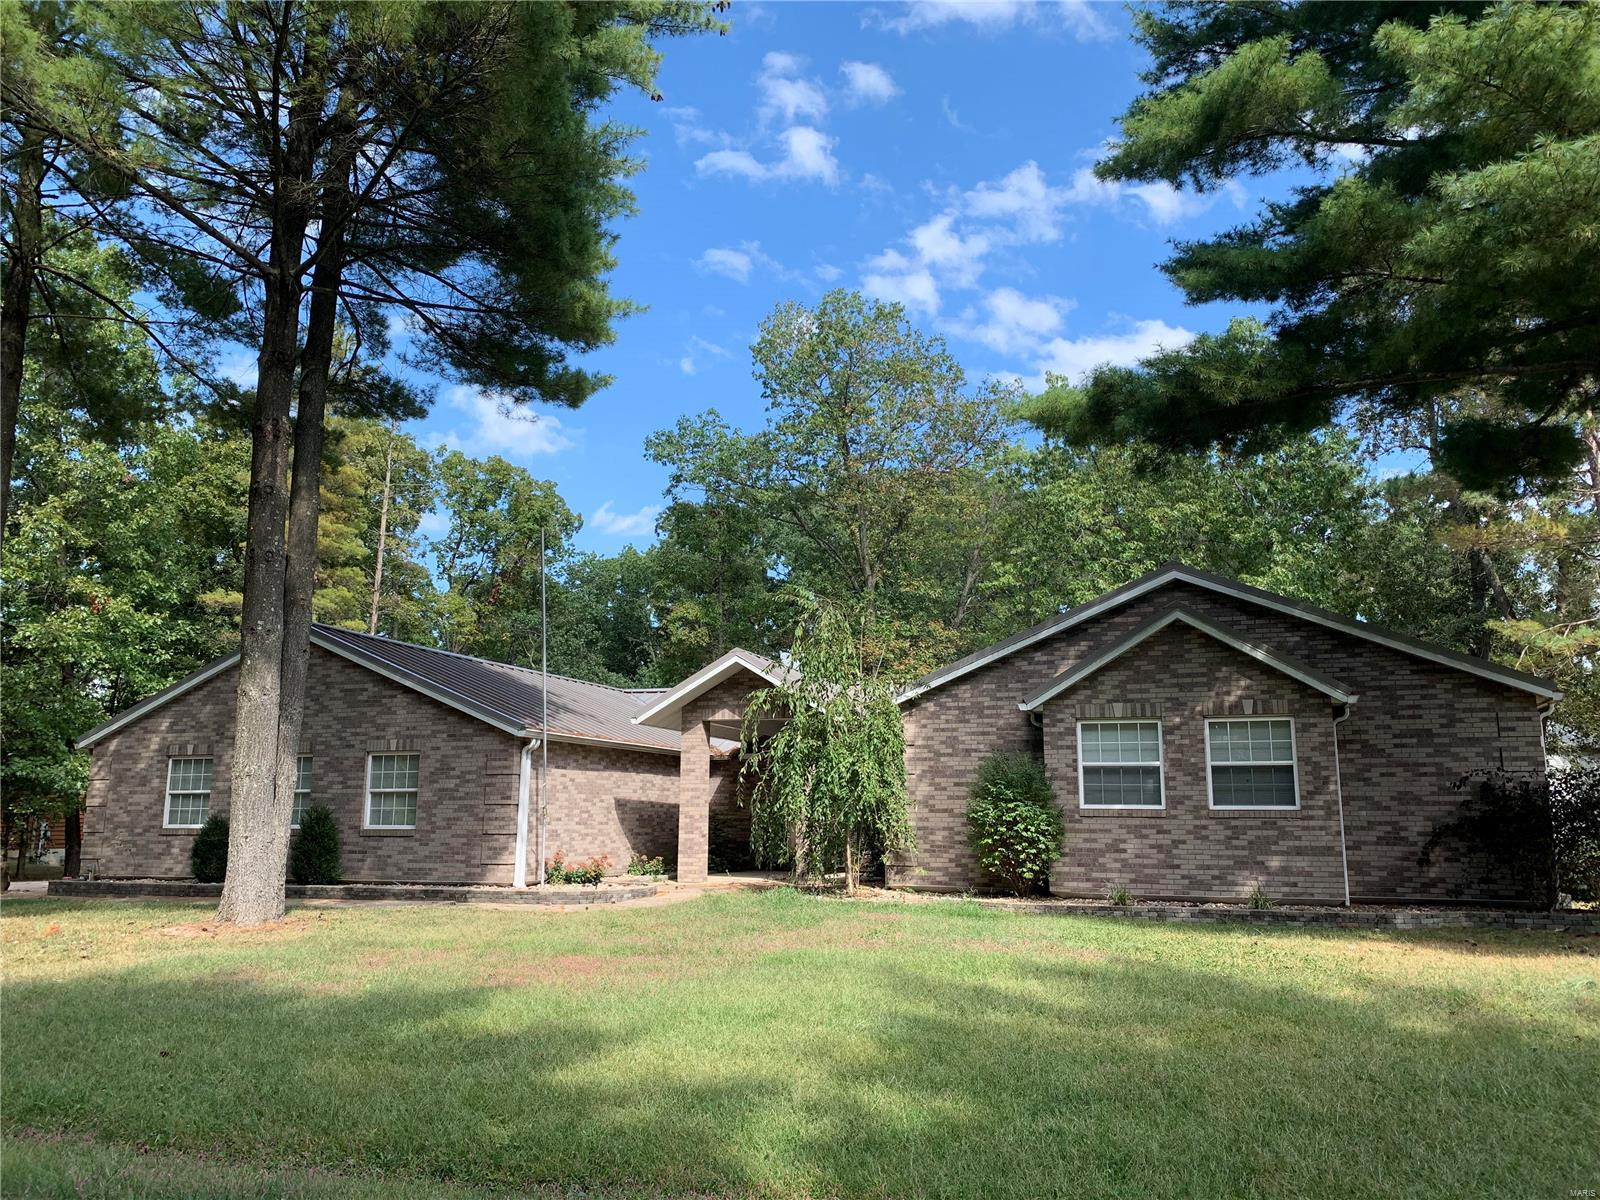 1330 Deer Creek Property Photo - Greenville, IL real estate listing